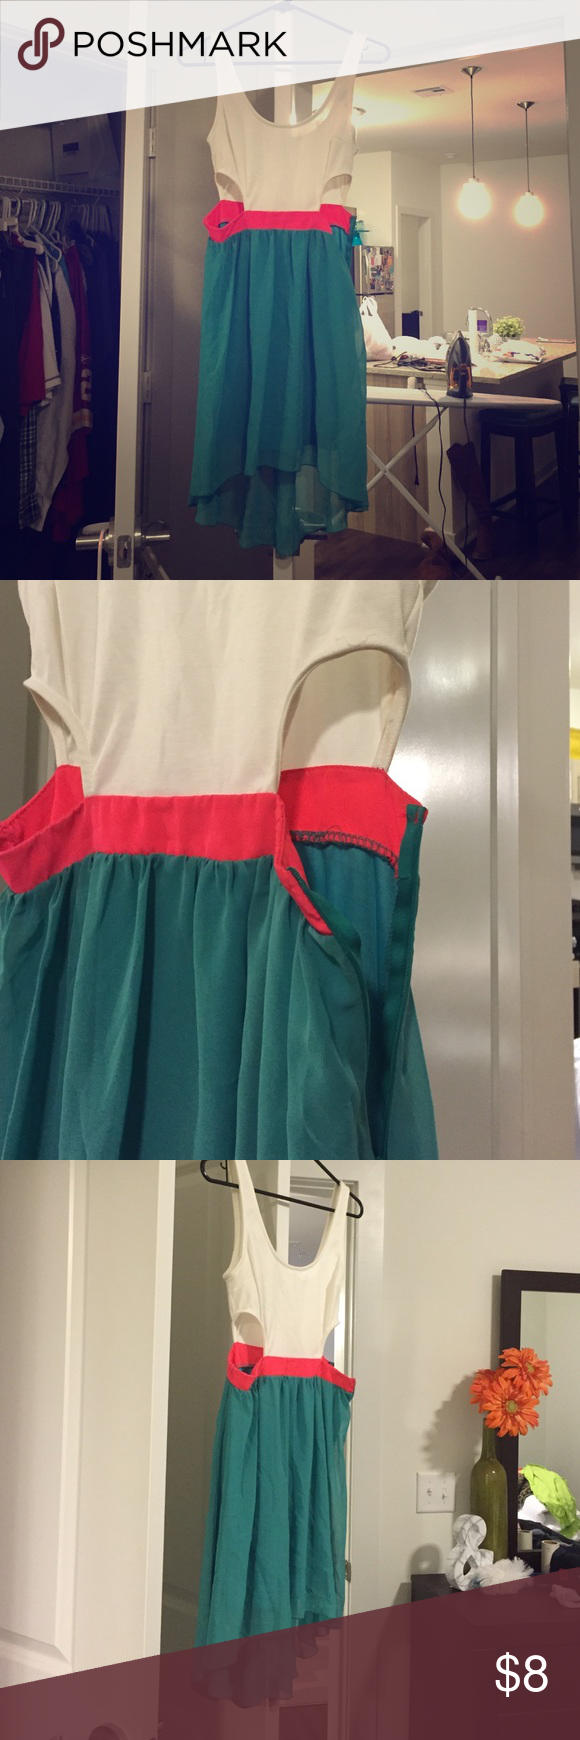 Color block dress Tritone colorful summer dress with side cutouts. Tried in but never worn! Charlotte Russe Dresses